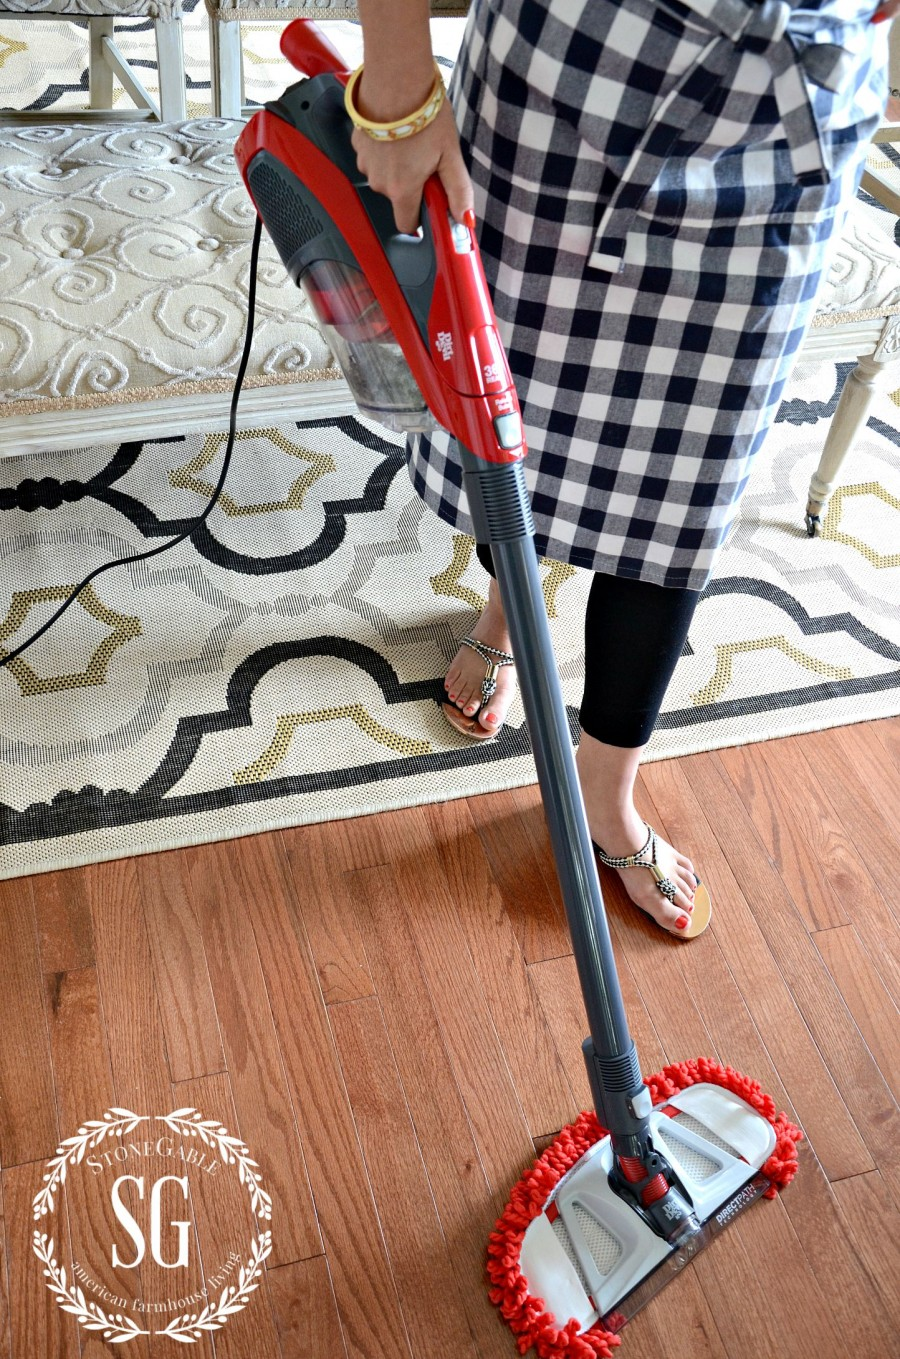 HOW TO CLEAN YOU HOME IN 30 MINUTES A DAY! vacuum-hardwood floors-stonegableblog.com